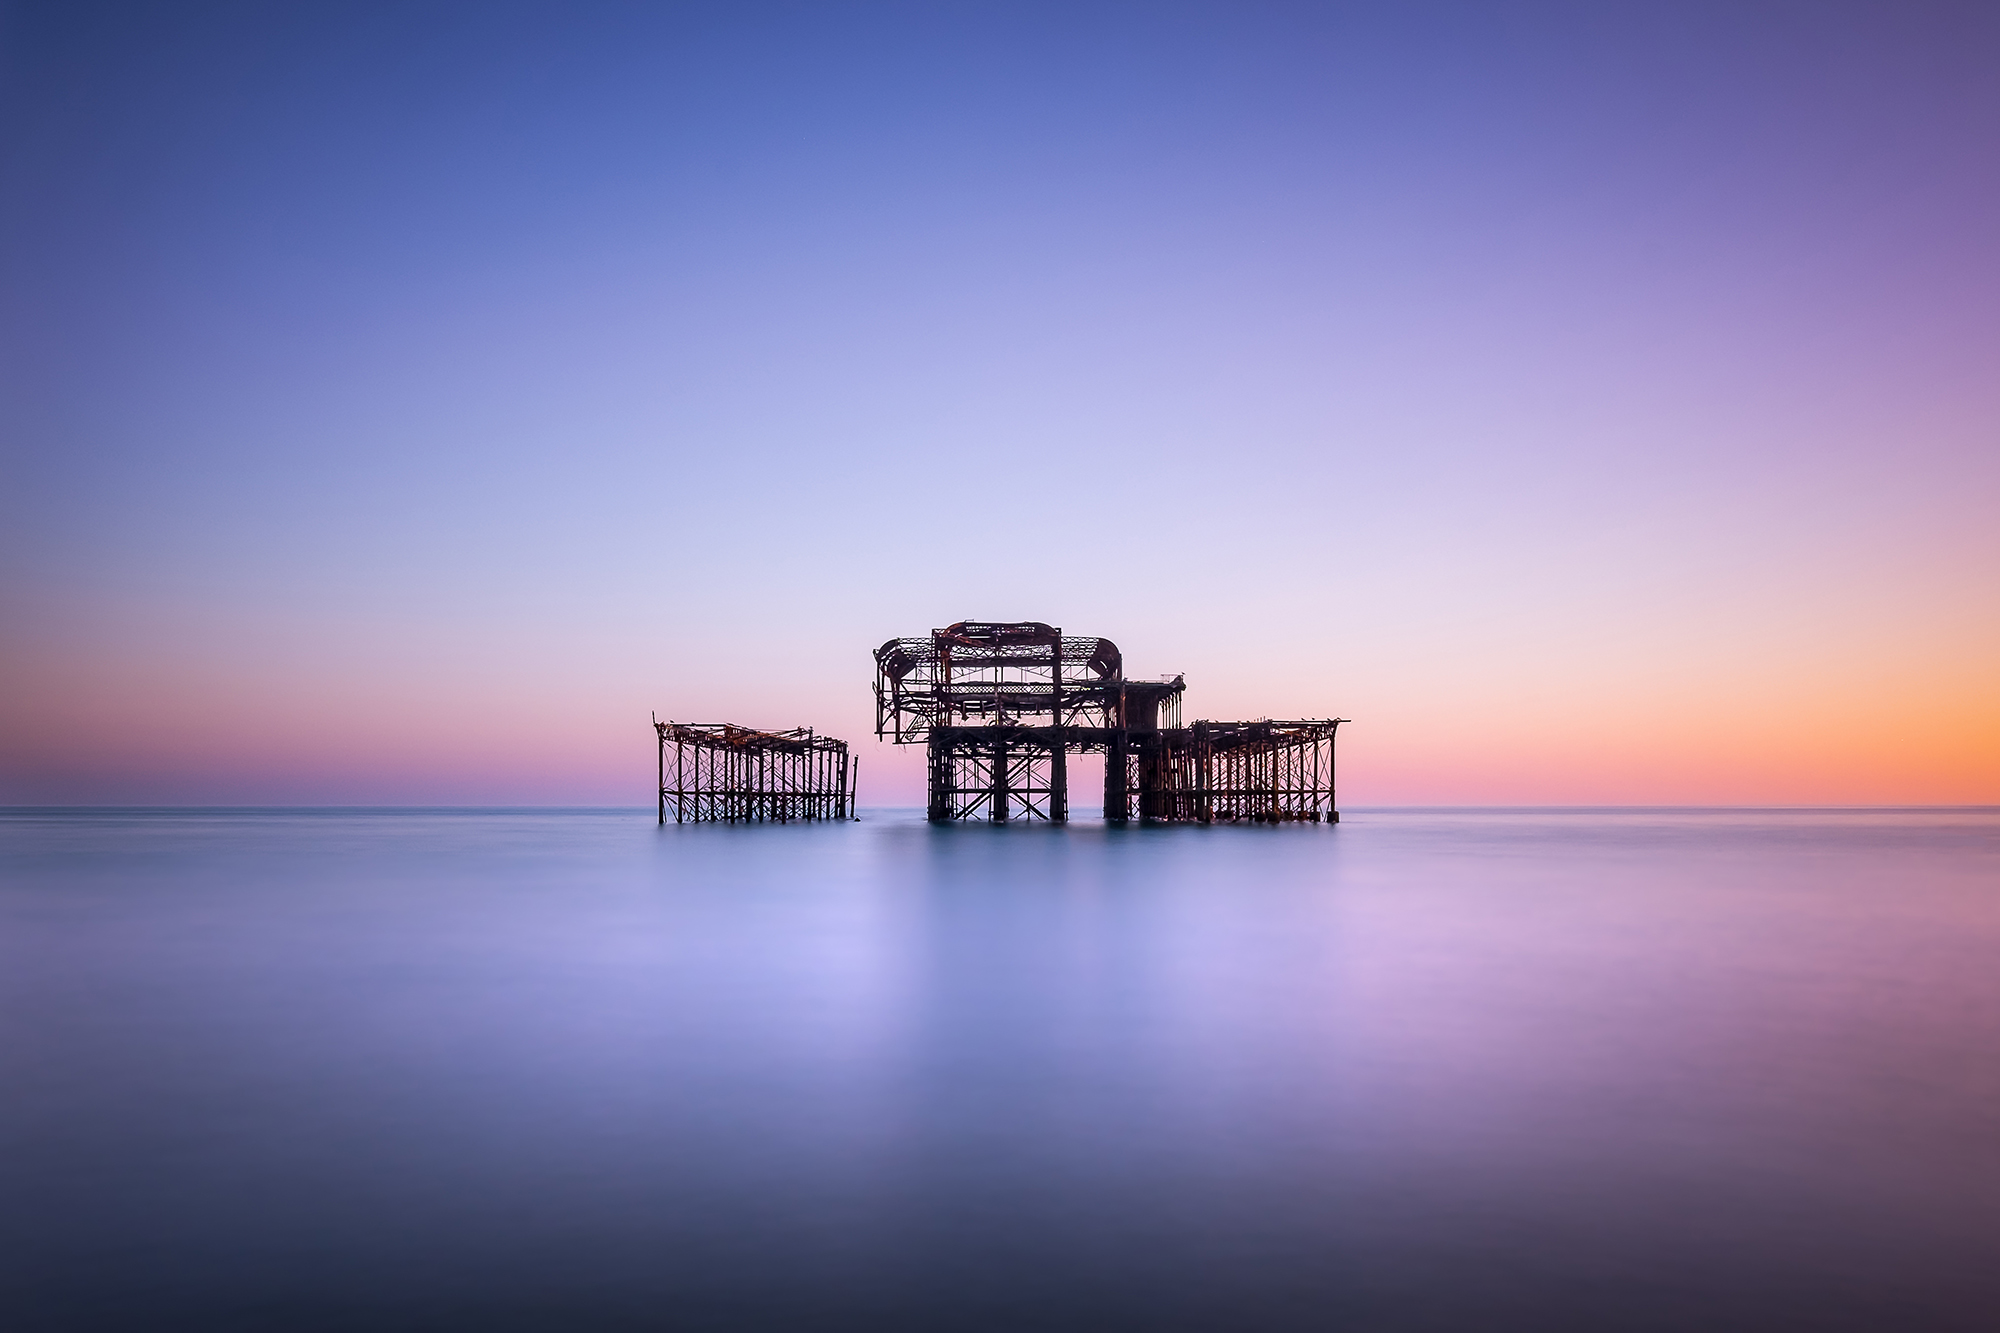 Sunset at the West Pier in Brighton England taken by Trevor Sherwin